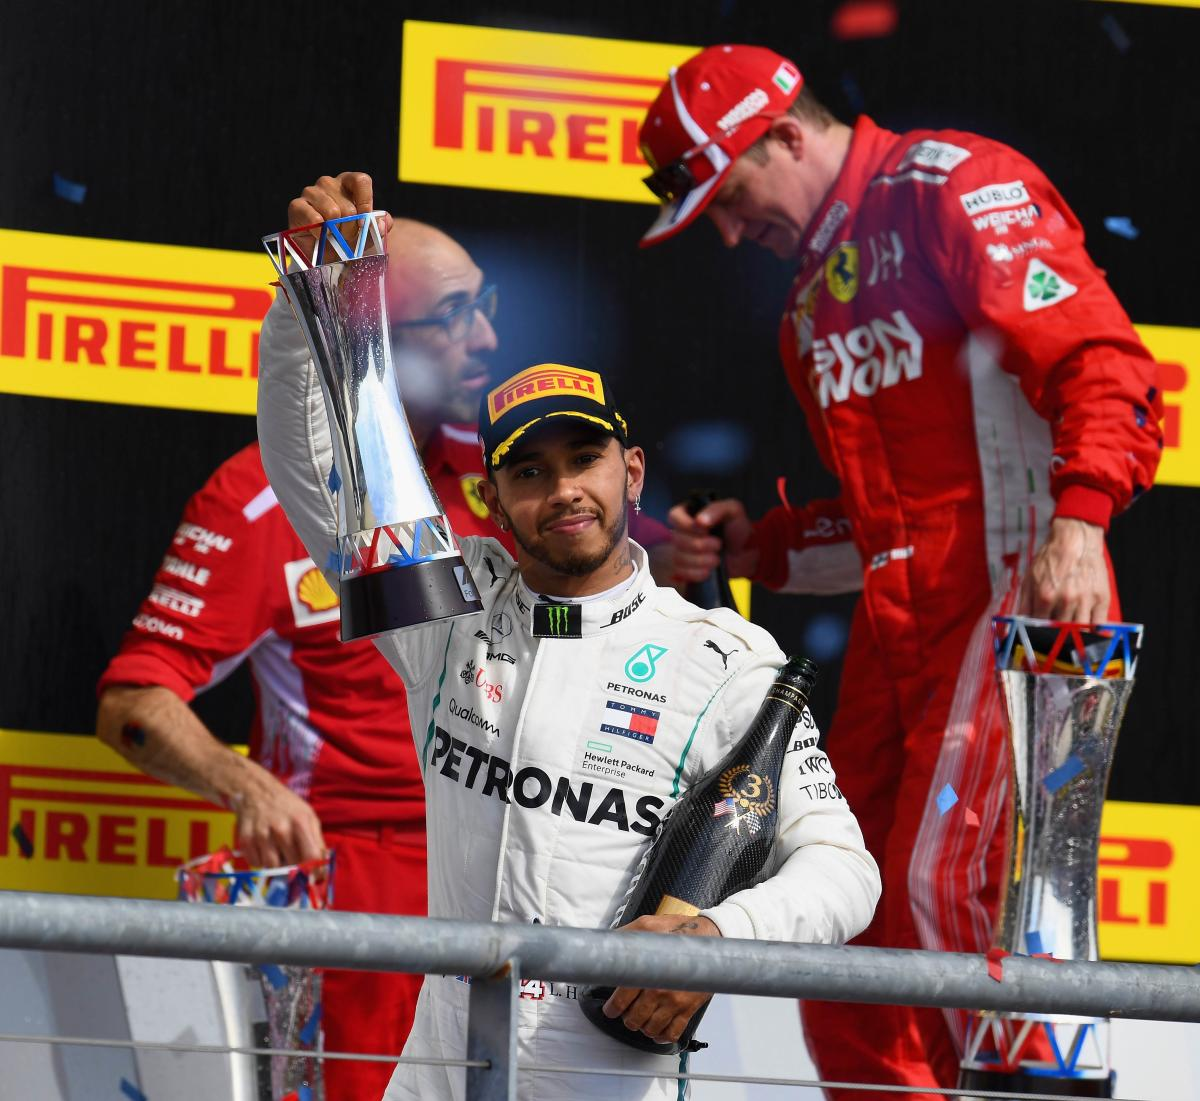 Third placed Lewis Hamilton of Mercedes celebrates on the podium after the United States Grand Prix. AFP